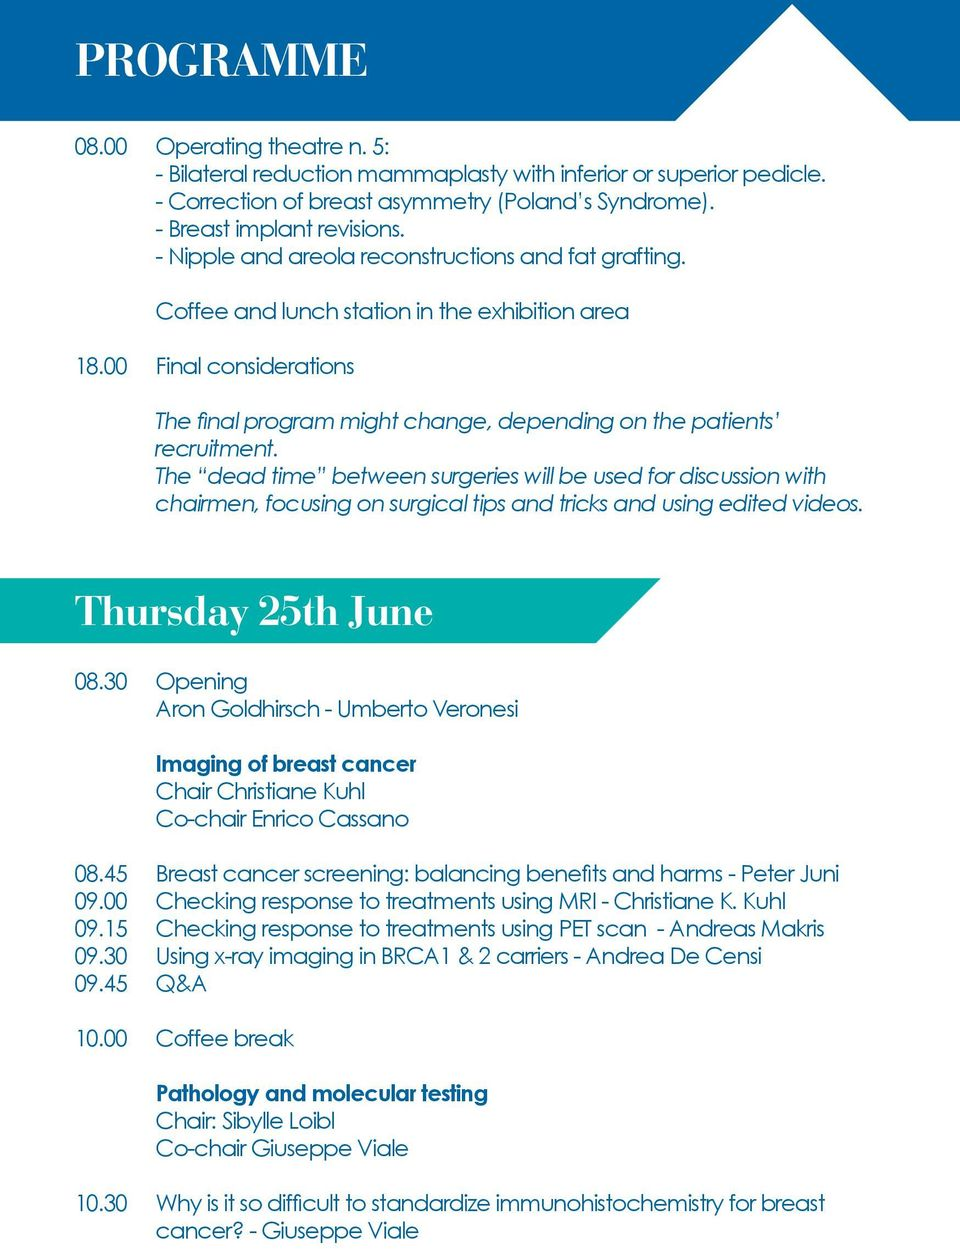 The dead time between surgeries will be used for discussion with chairmen, focusing on surgical tips and tricks and using edited videos. Thursday 25th June 08.